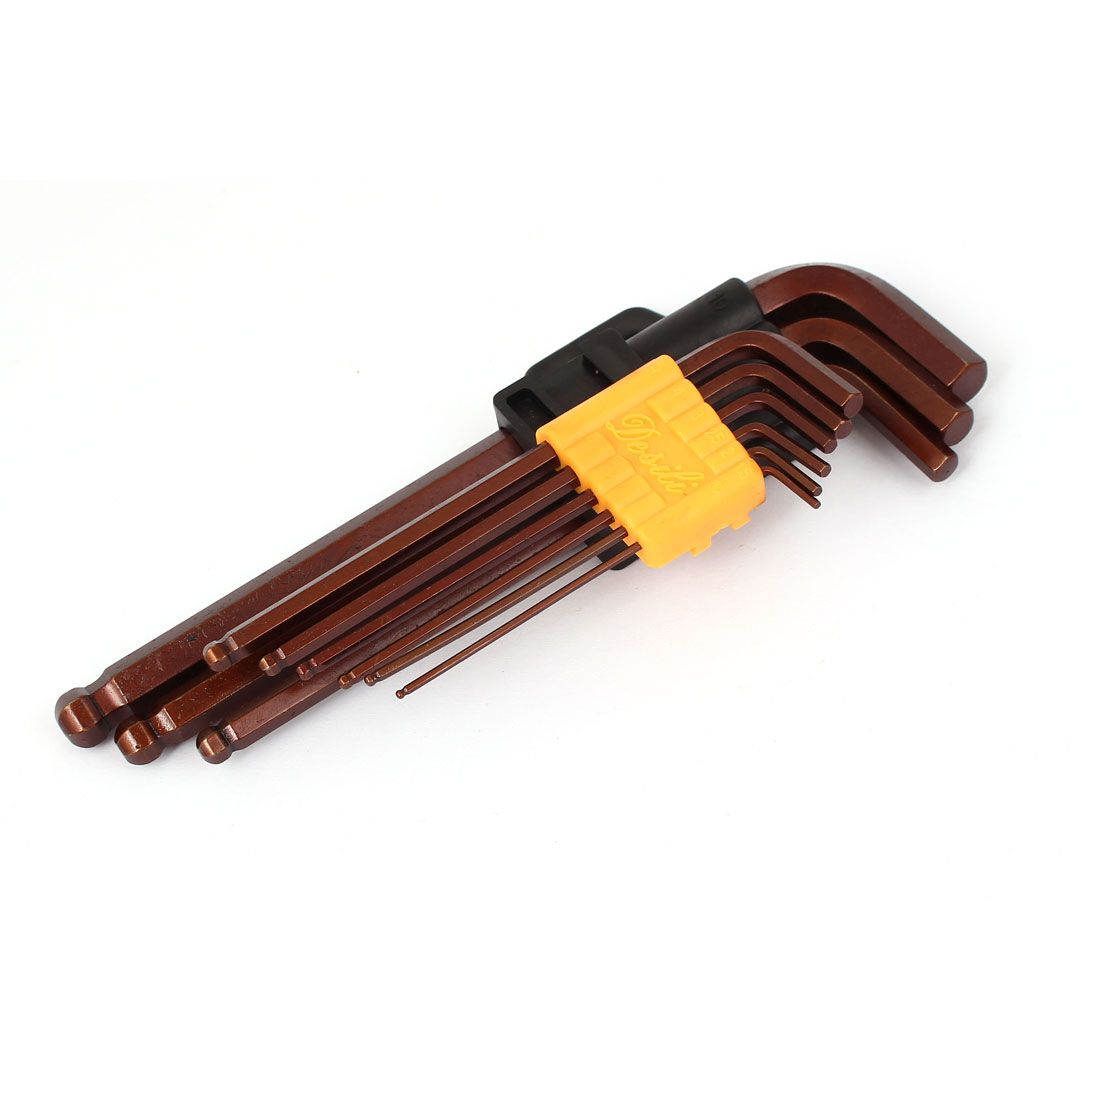 1.5mm-10mm Ball End L Style S2 Hex Spanner Wrench Tools Brown 9 in 1